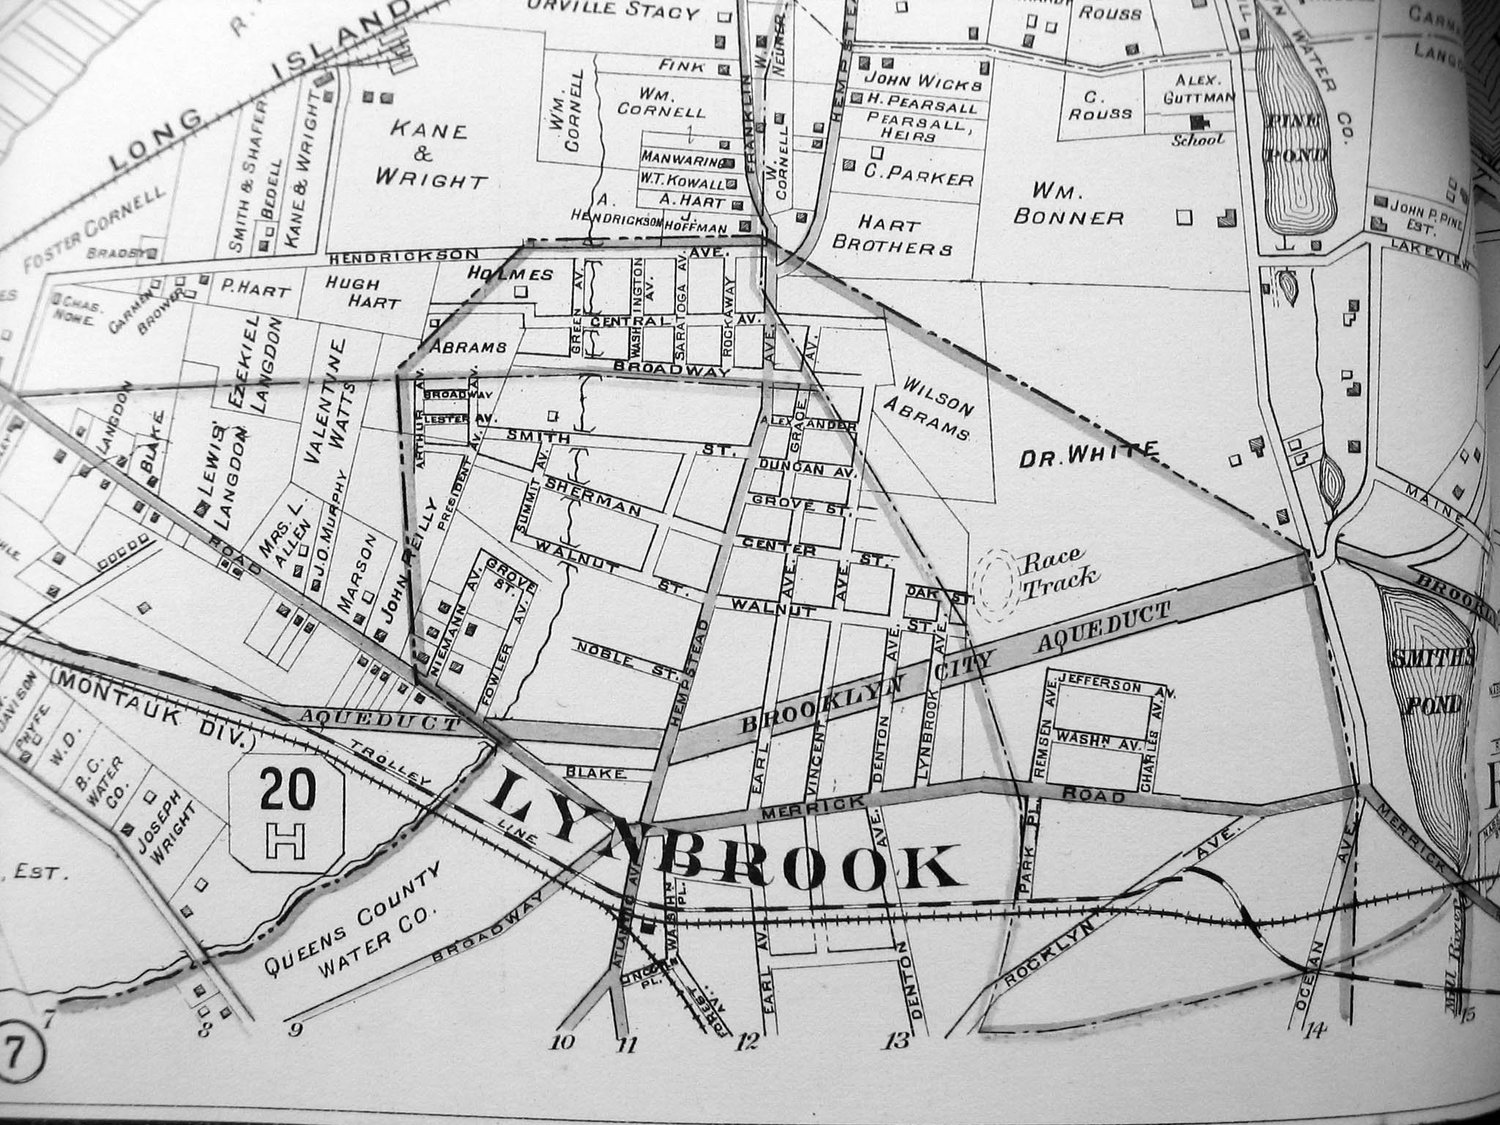 Lynbrook's racetrack was adjacent to the Brooklyn City Aqueduct (Peninsula Boulevard today).